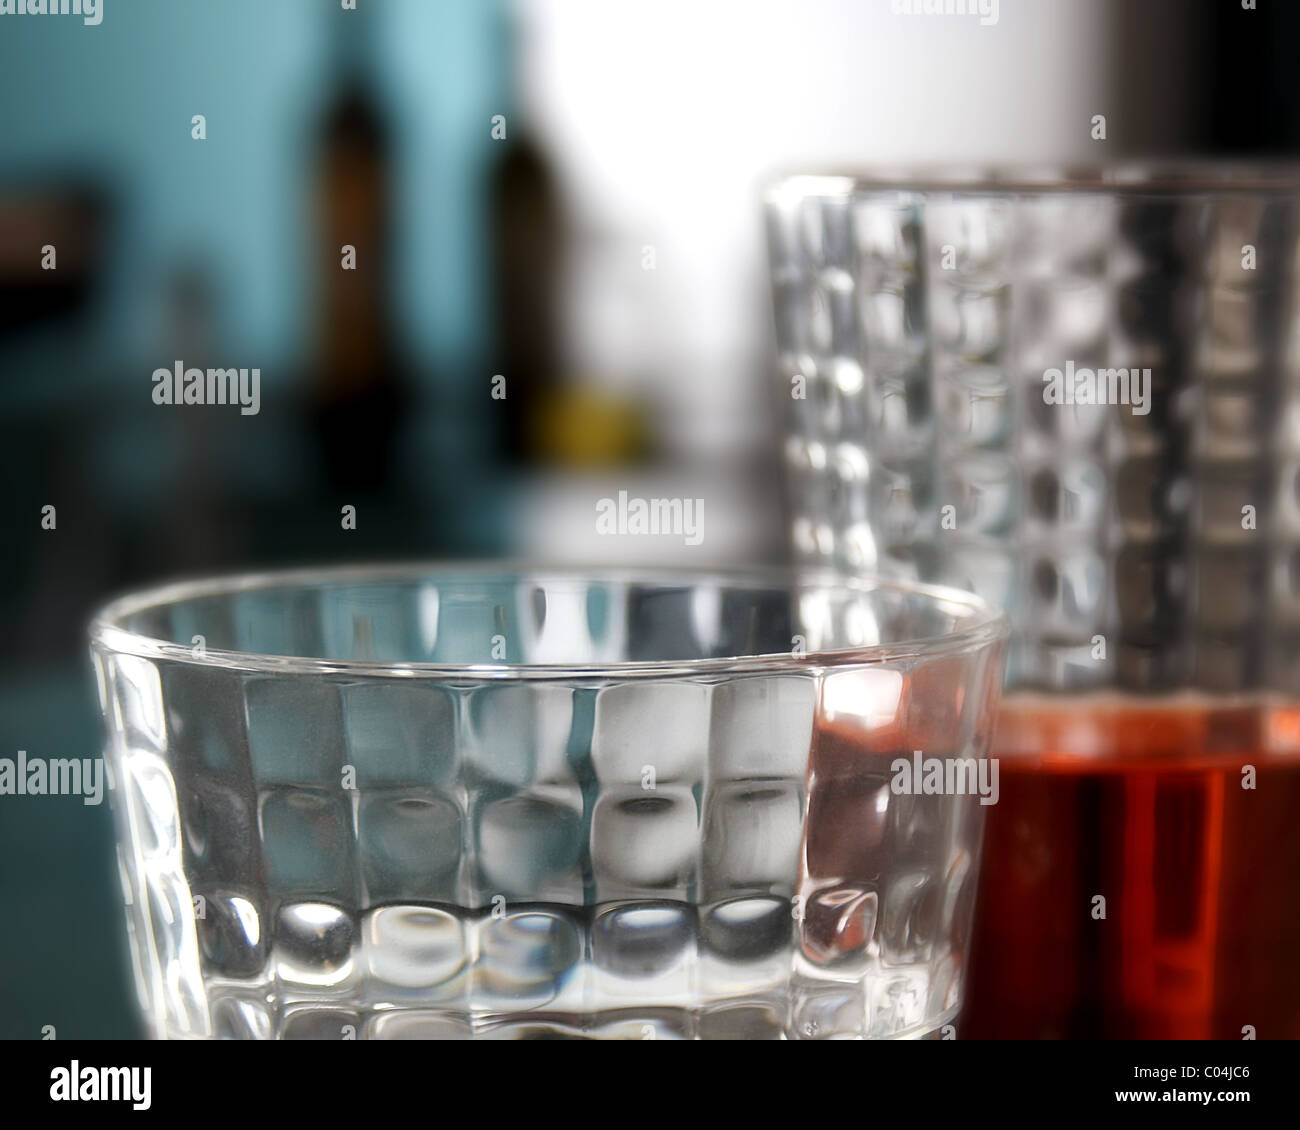 glasses of red drink and bottles in the background - Stock Image